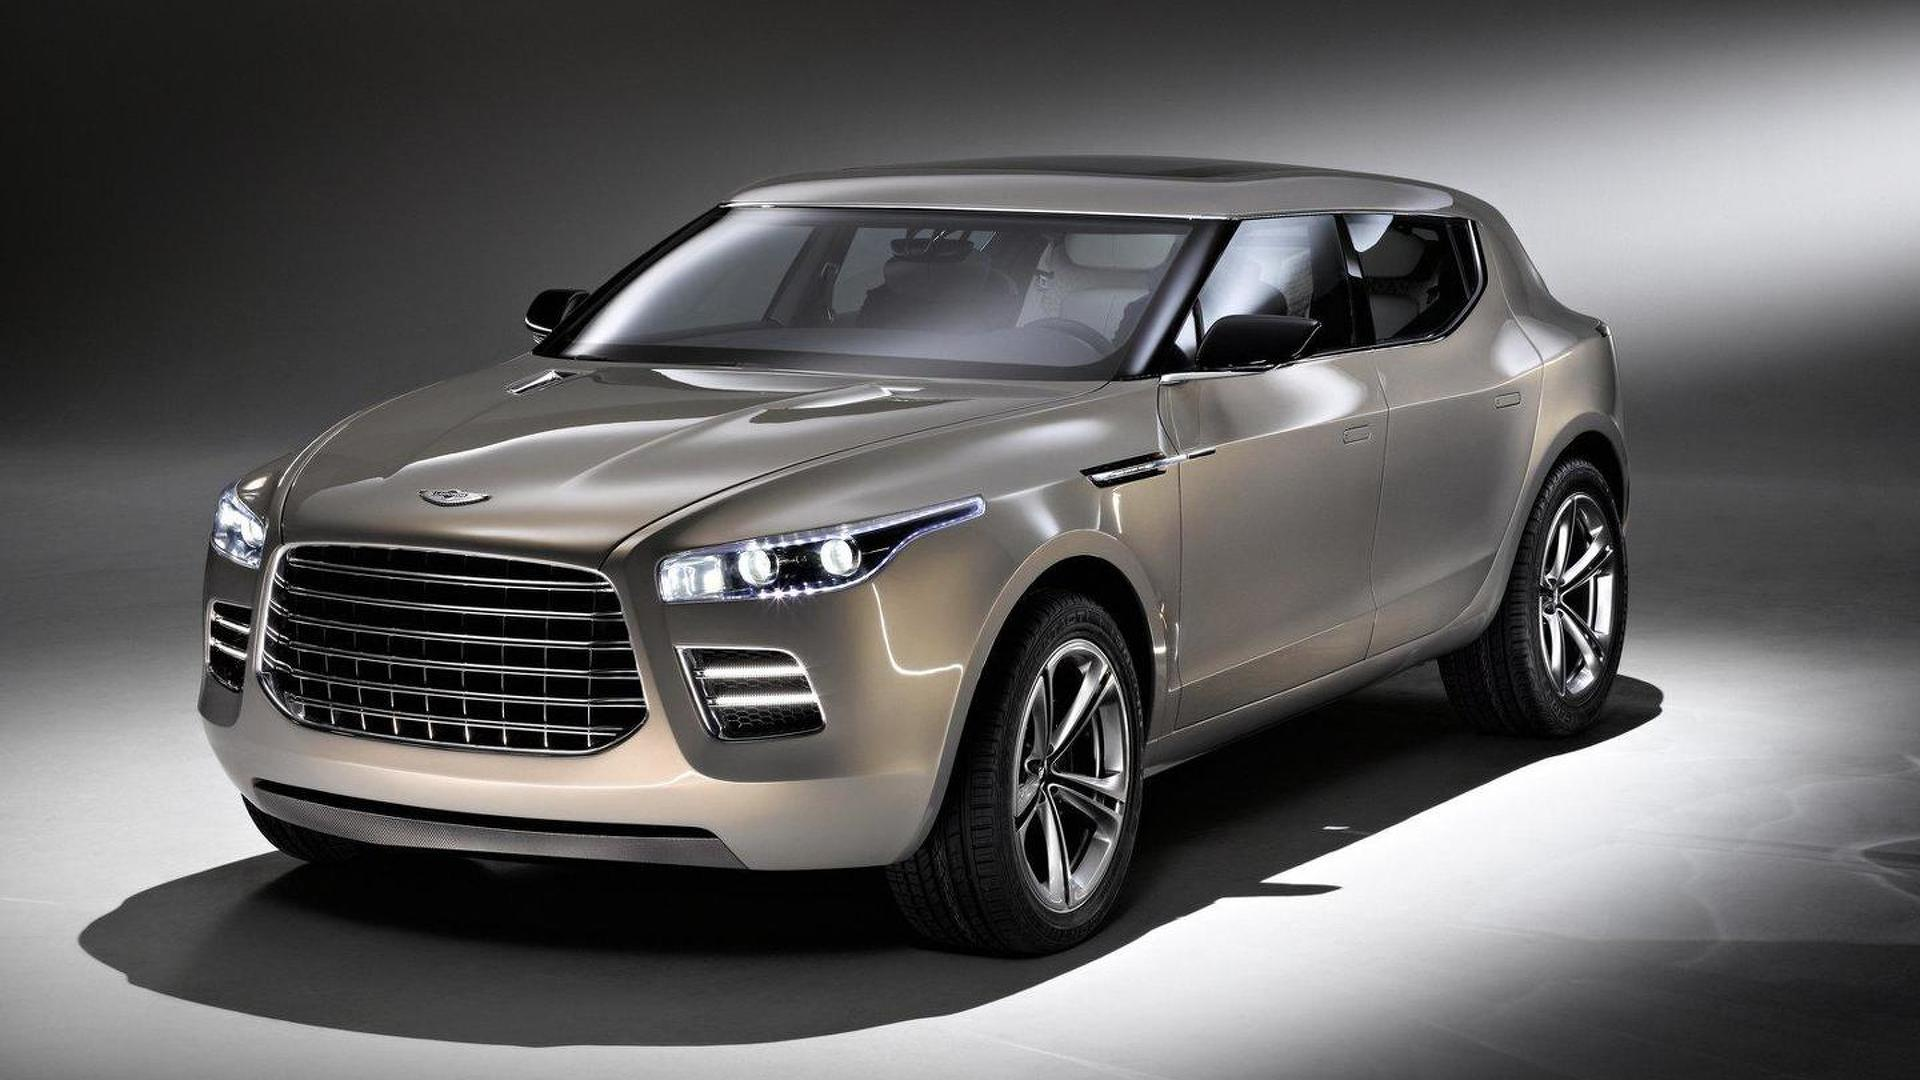 Aston Martin Design Director downplays a crossover hints at new